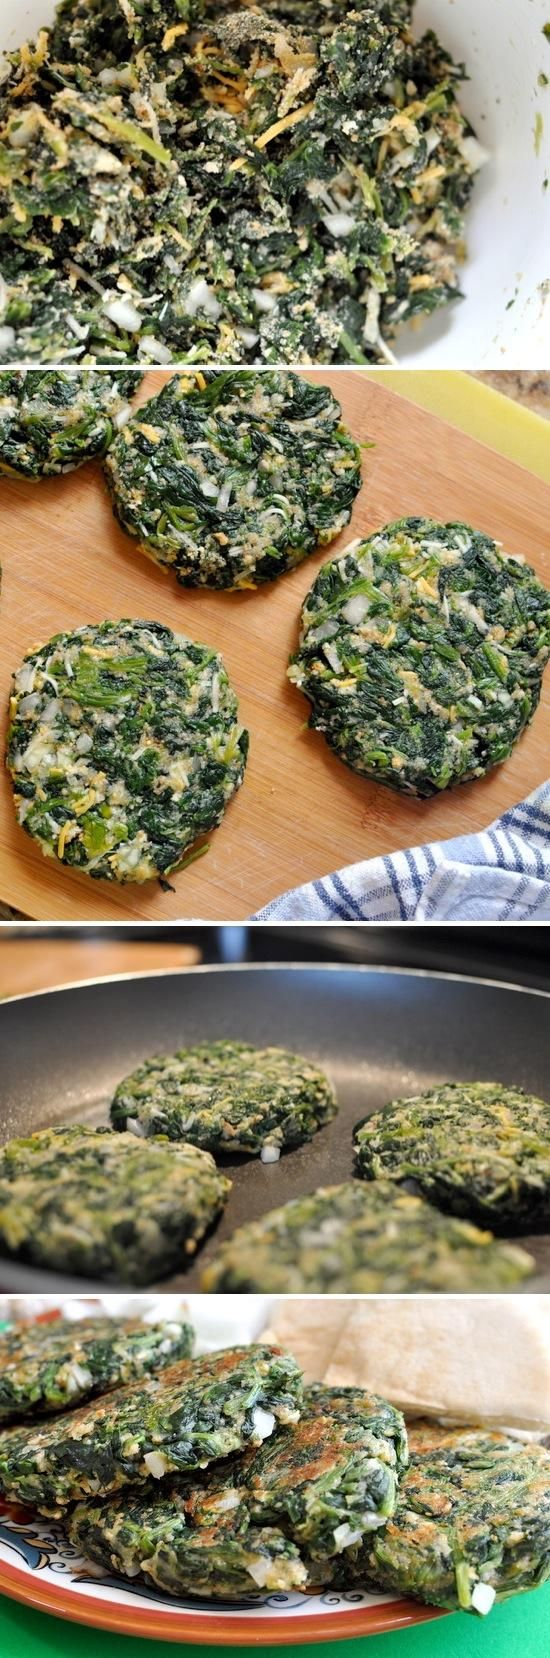 "Spinach ""burgers"". These are high in protein, low in carbs and absolutely delicious! #HealthyEating #CleanEating  #ShermanFinancialGroup"